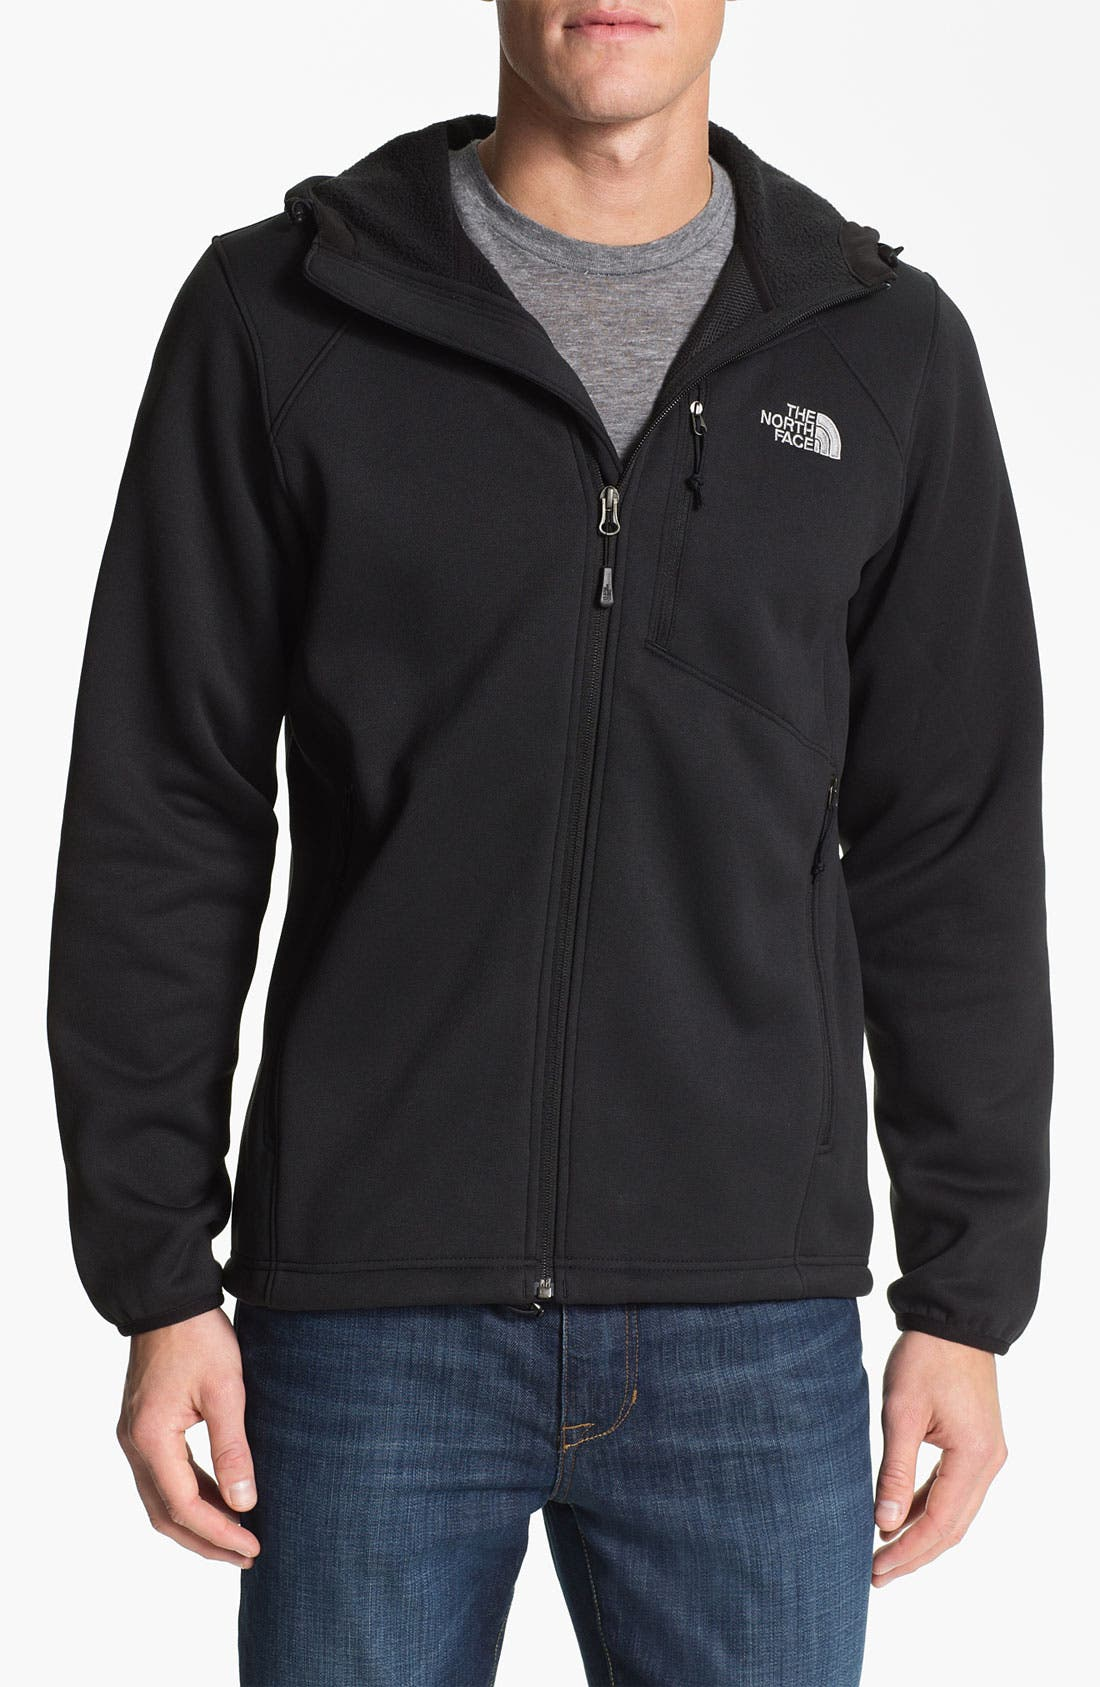 Alternate Image 1 Selected - The North Face 'Cucamonga' Fleece Jacket